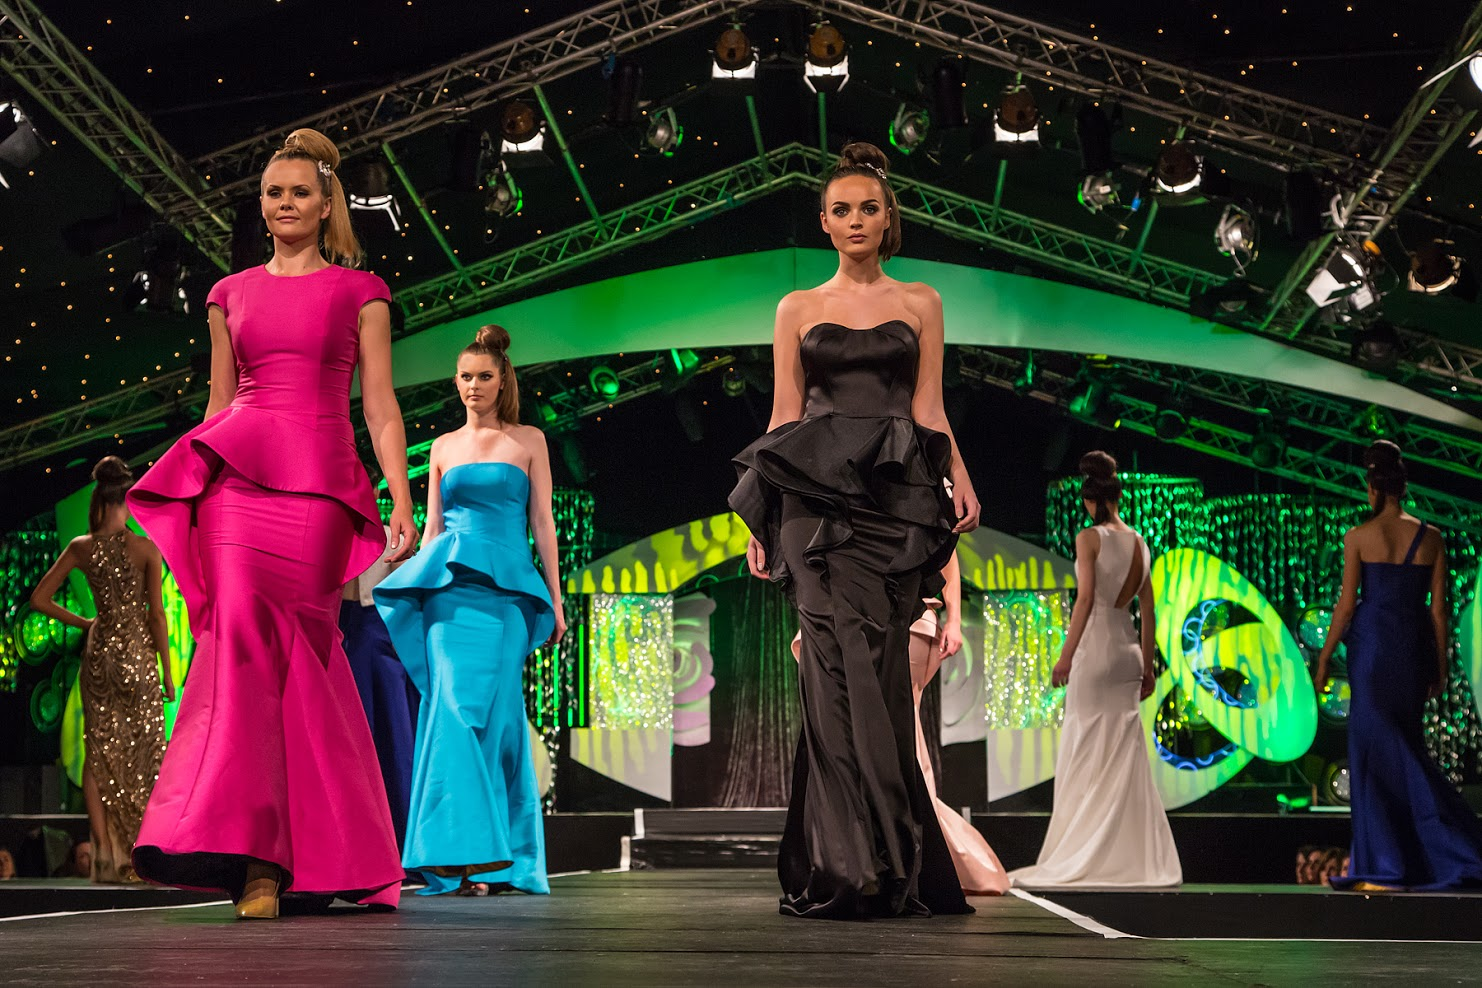 dolf_patijn_rose_of_tralee_fashion_16082015_0478